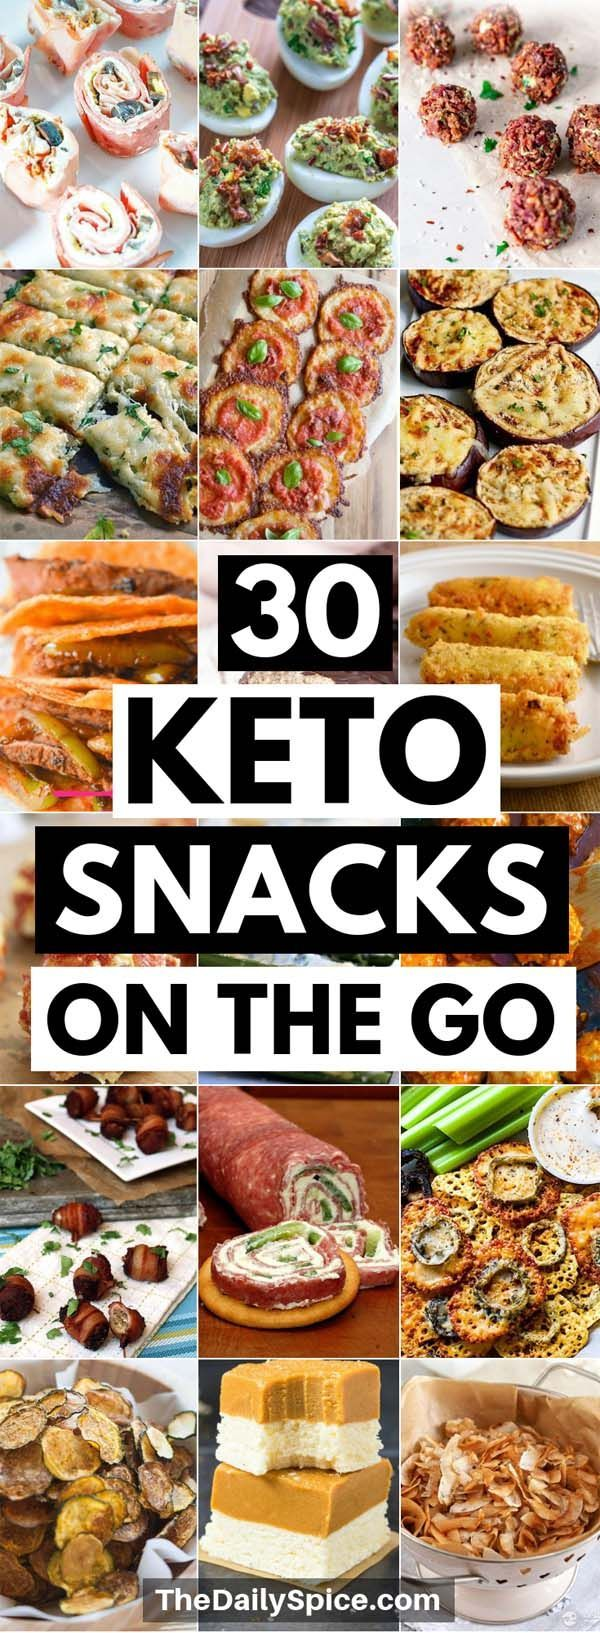 Quick and easy keto snacks on the go to help with weight loss on the ketogenic diet